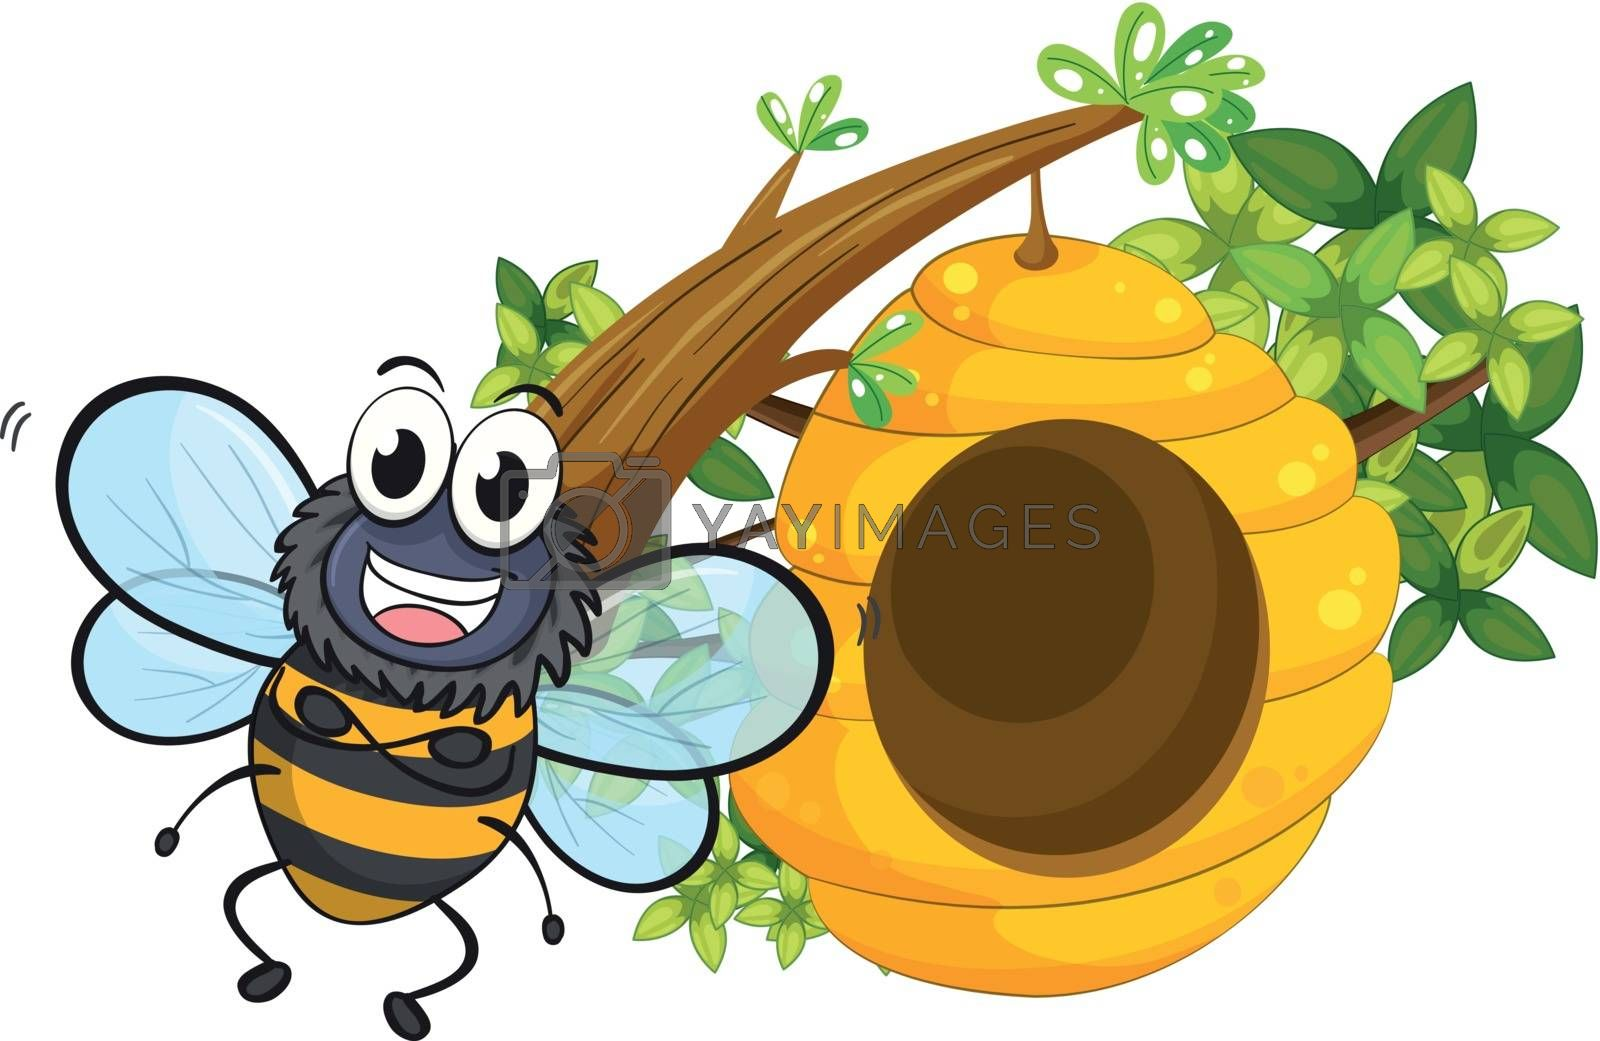 Illustration of a smiling bee beside its beehive on a white background